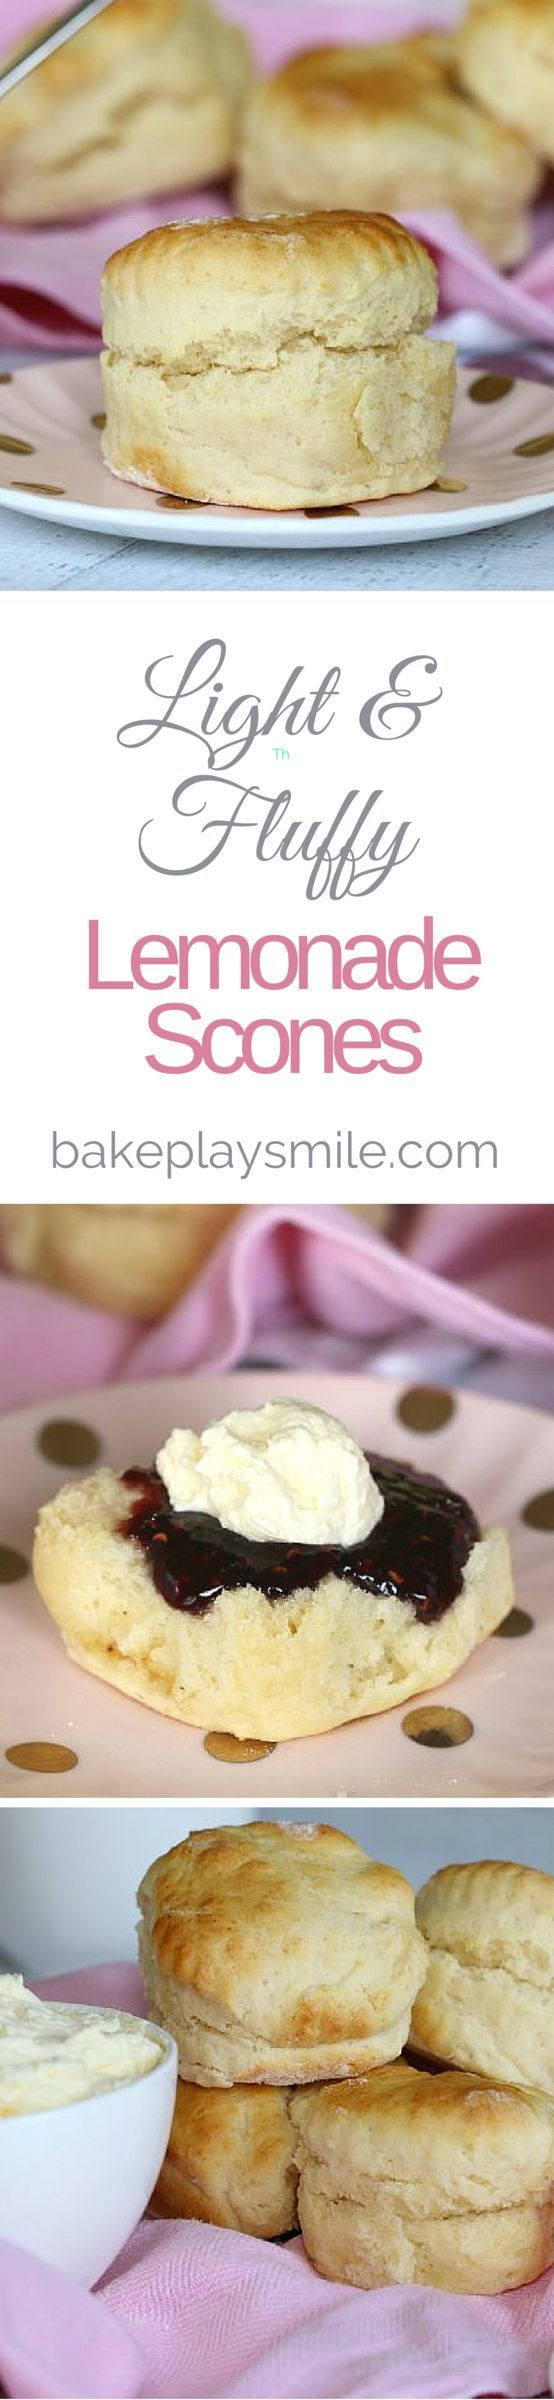 I have been looking for a recipe for scones for my weekly afternoon tea party. I…